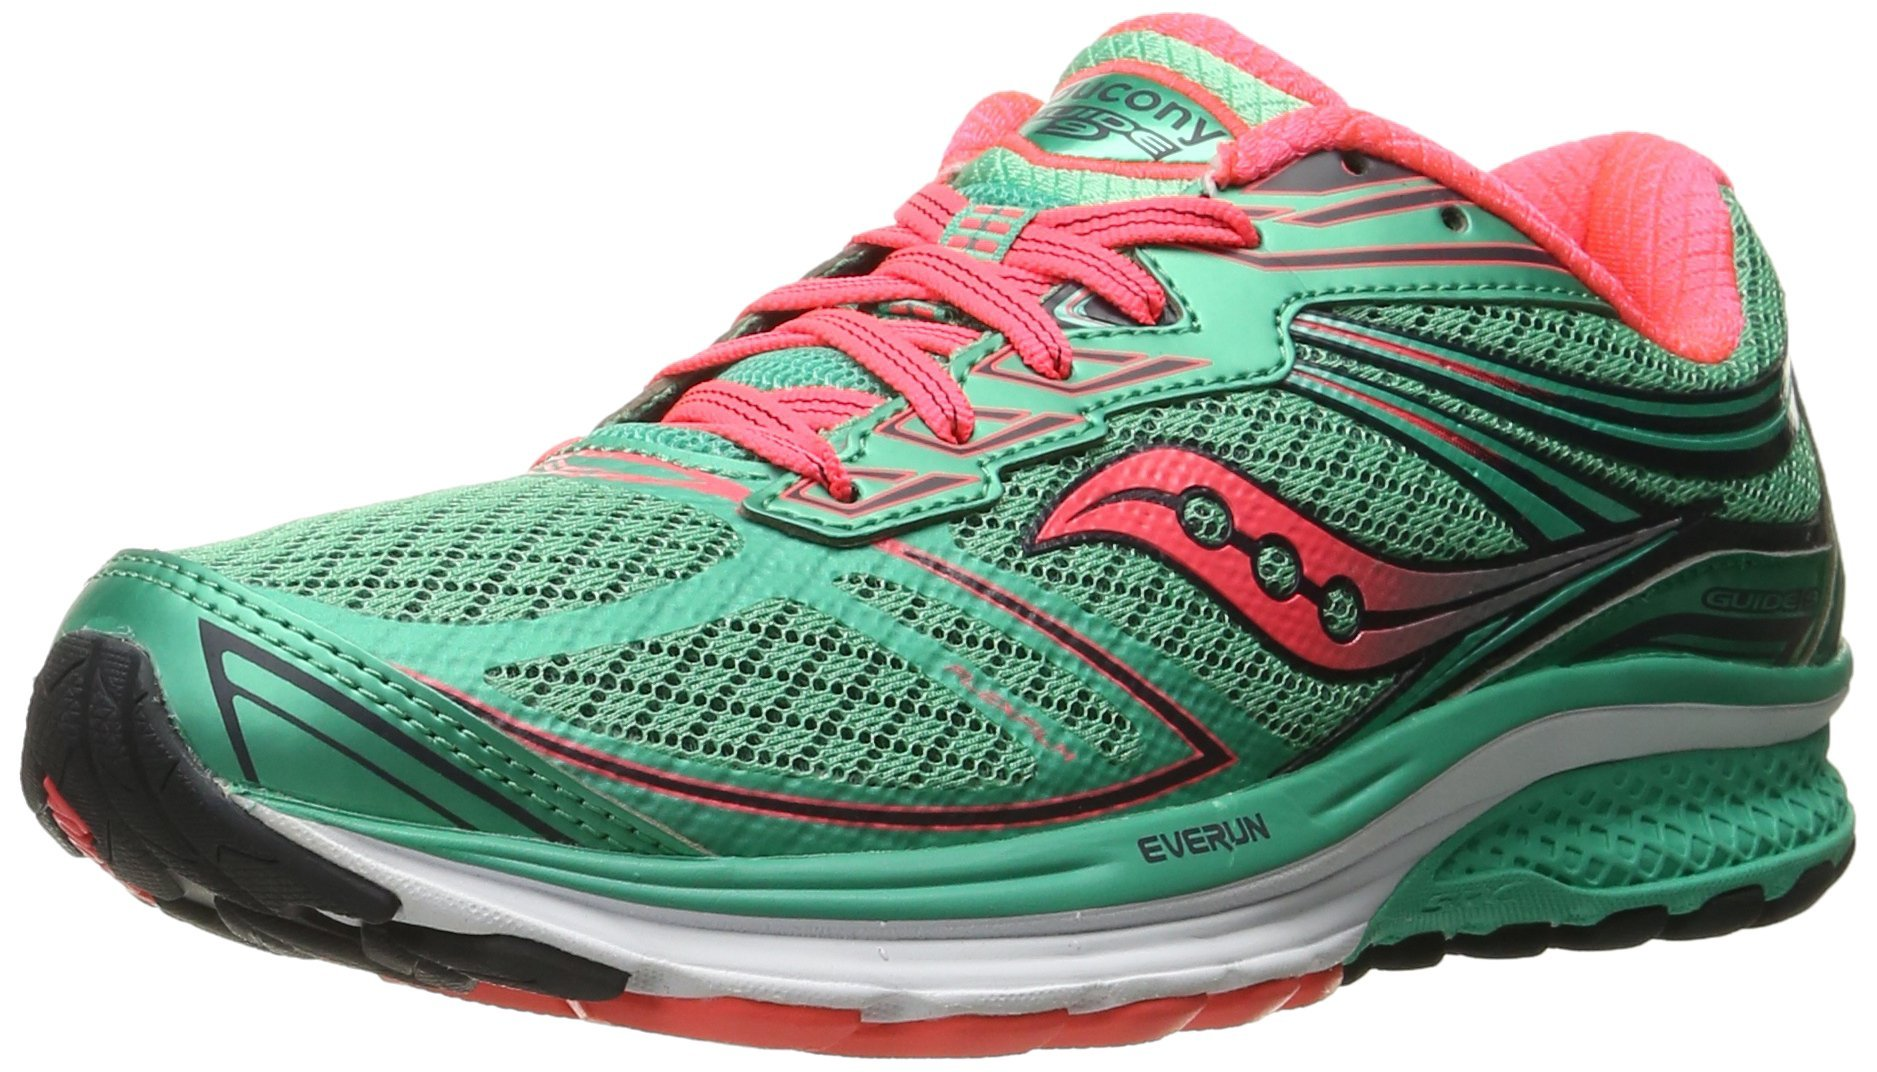 Saucony Women's Guide 9 Running Shoe, Teal/Coral, 10 M US